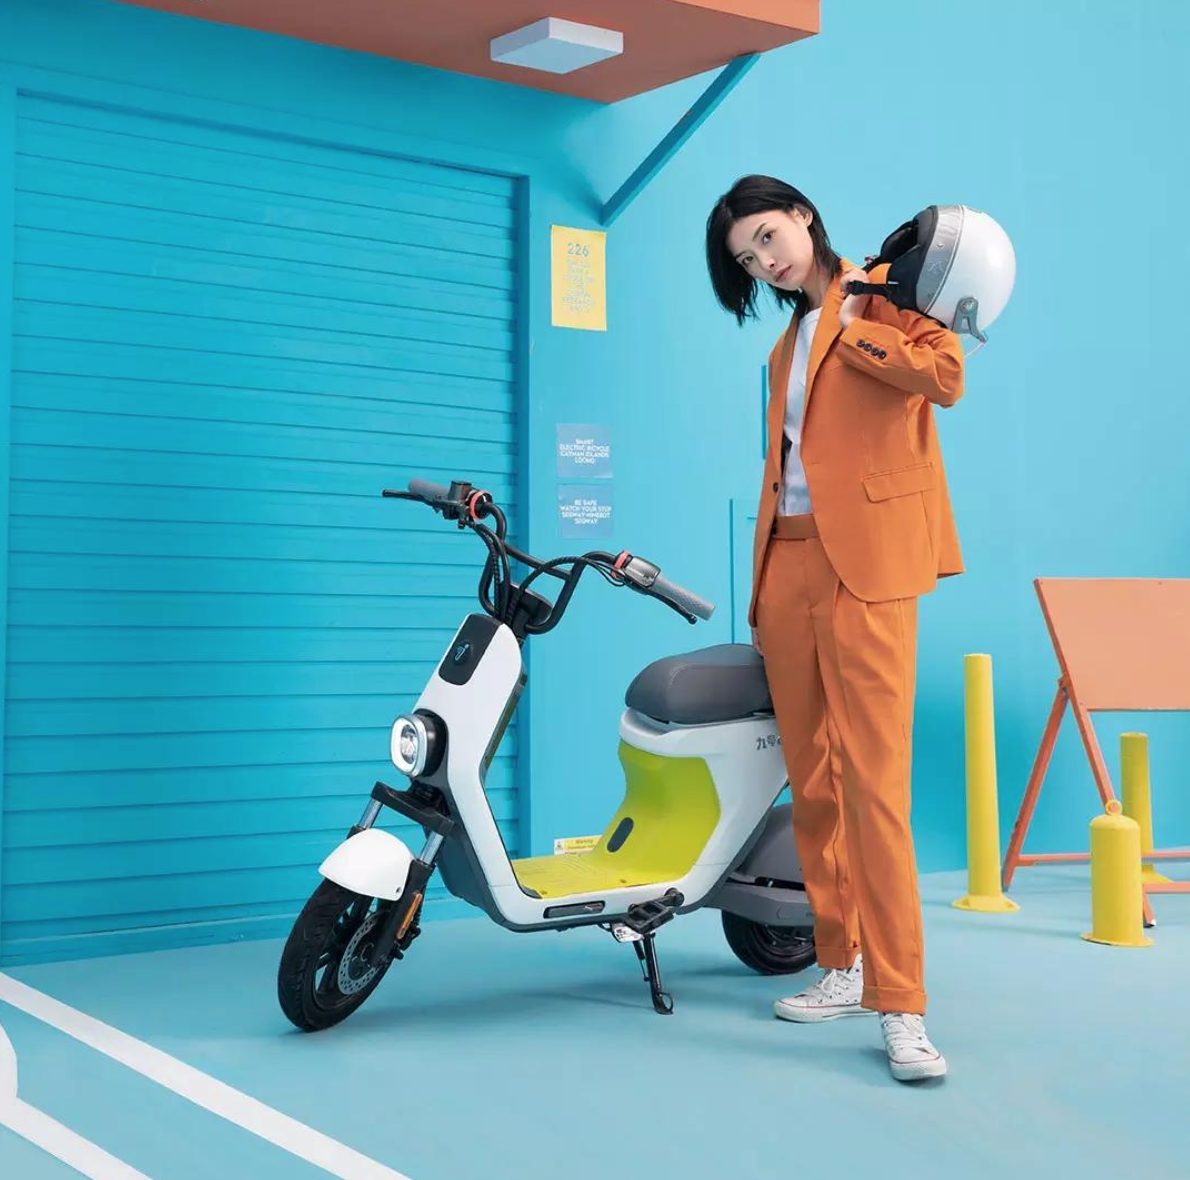 ninebot c40 electric scooter specs